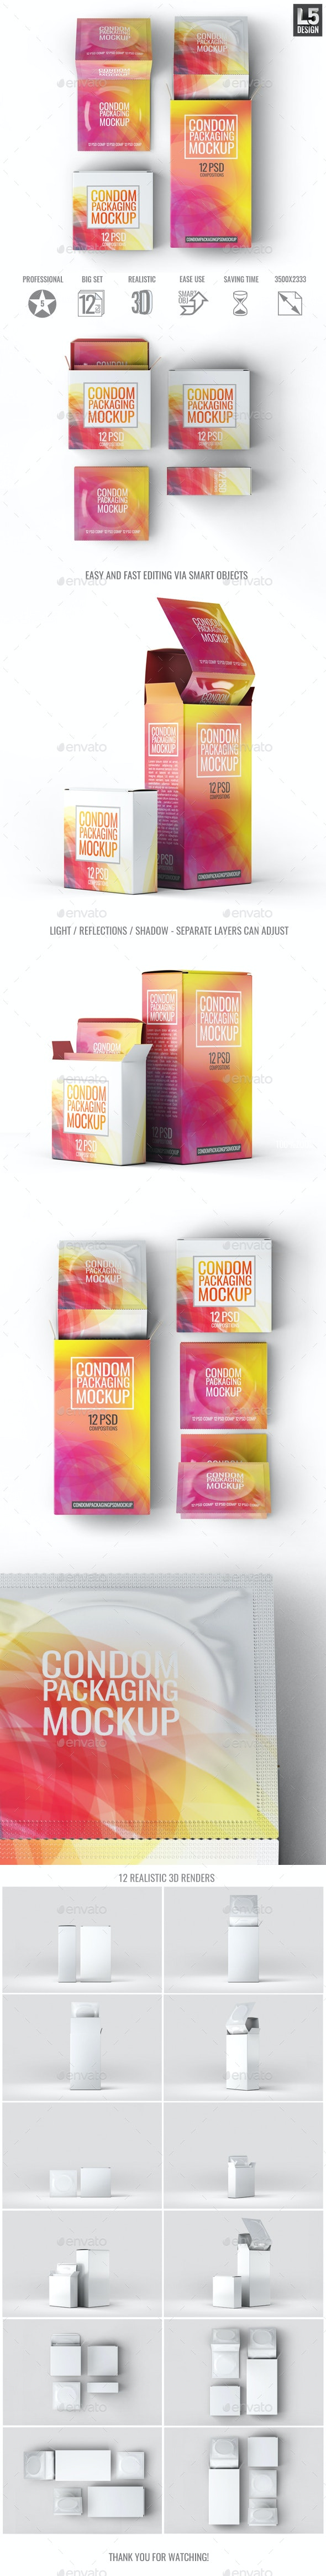 Condoms Packaging Mock-Up - Miscellaneous Packaging